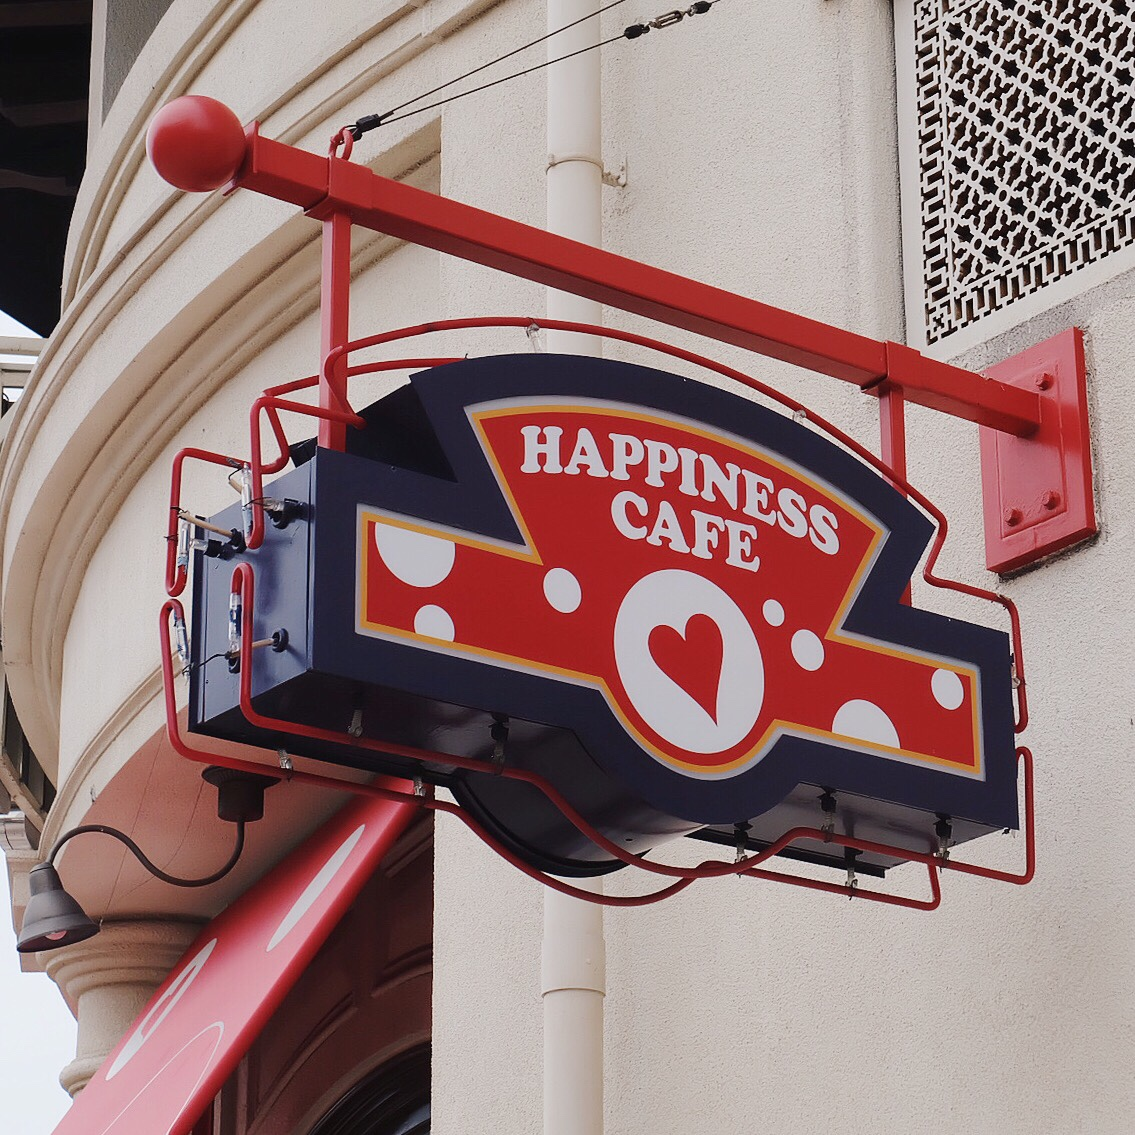 happiness-cafe.jpg